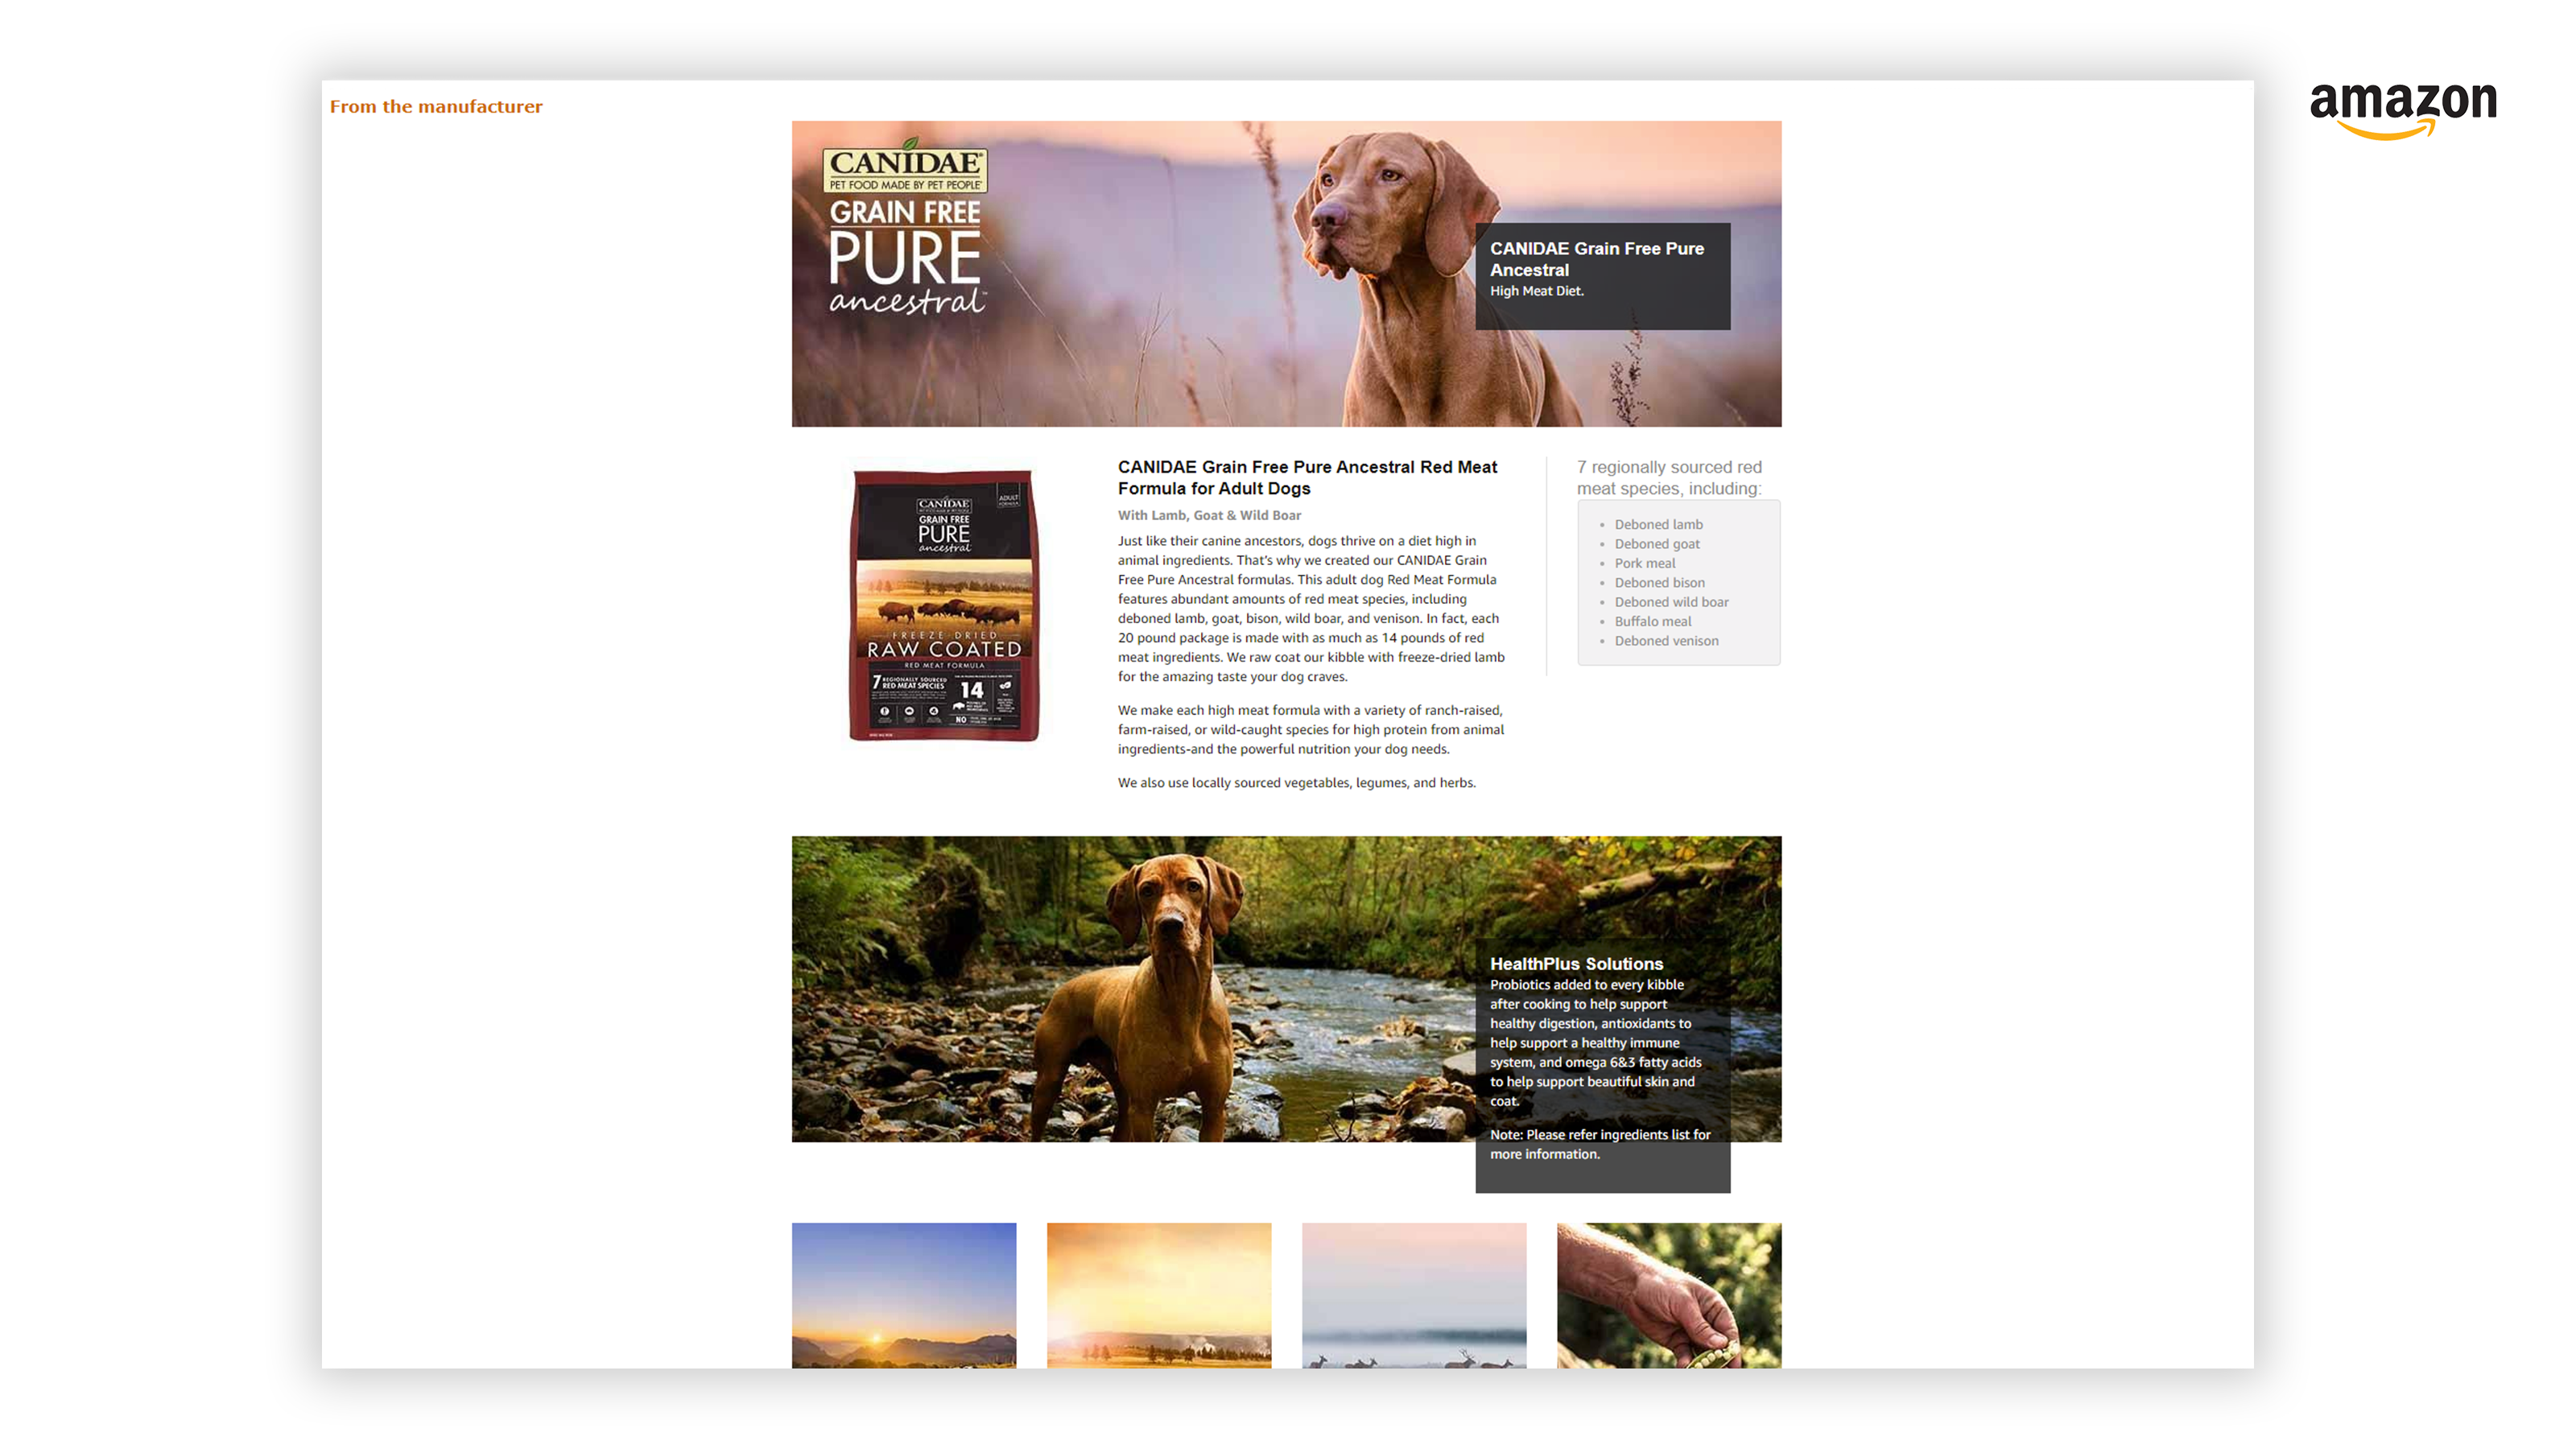 Canidae Ancestral Dog Food Amazon A+ Enhanced Content Page